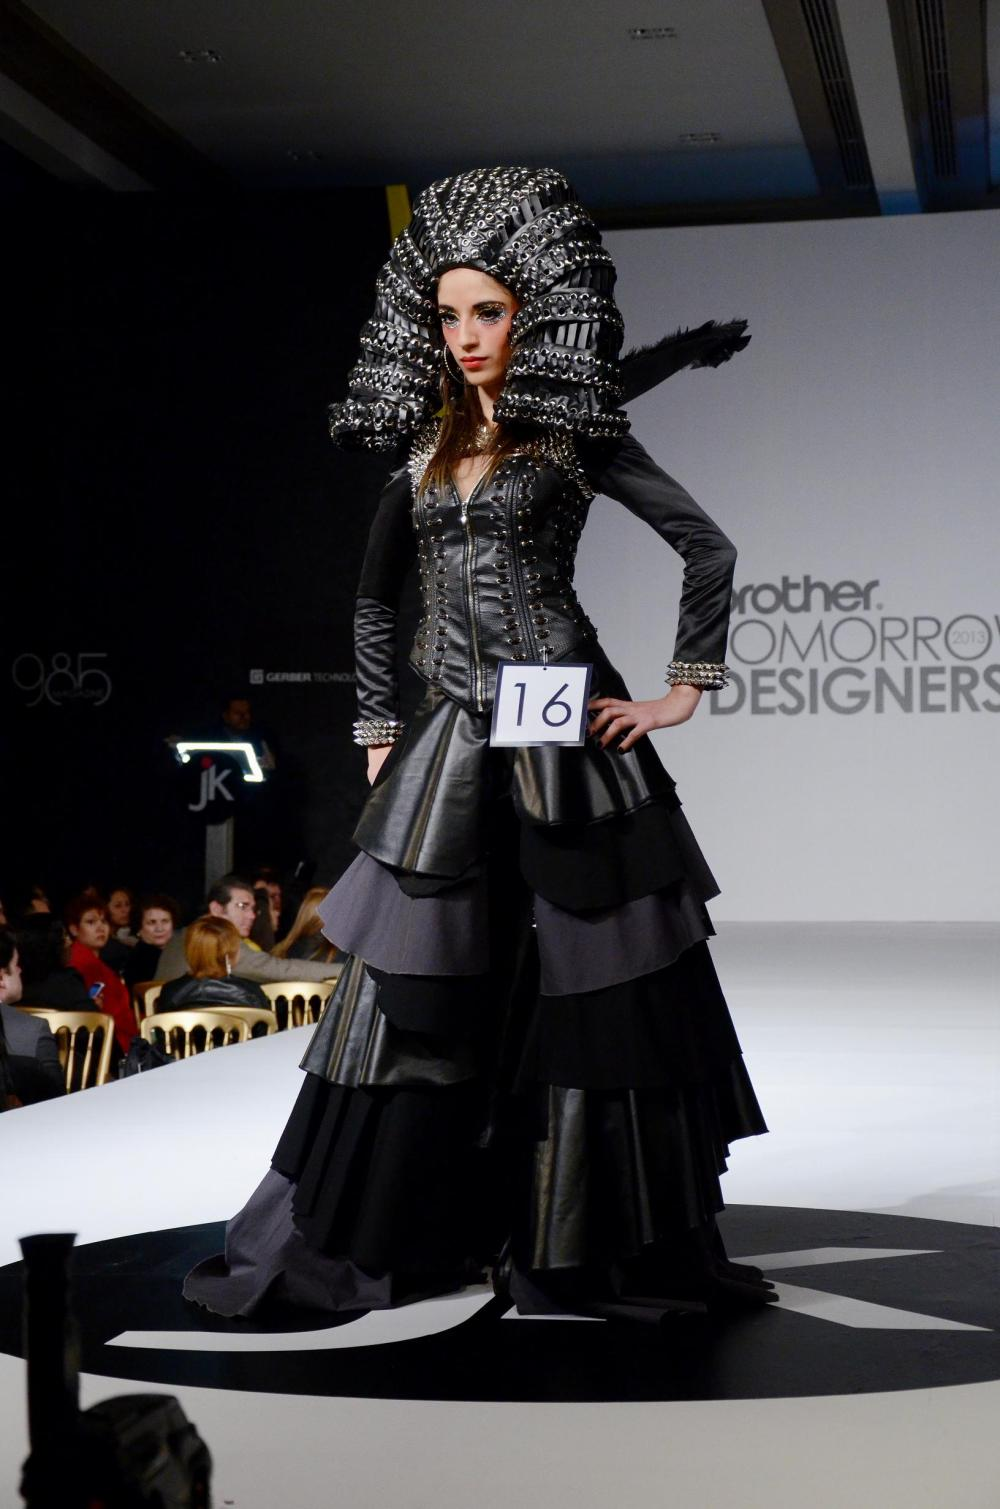 11.-Tomorrow´s Designers-Universidad Jannette Klein